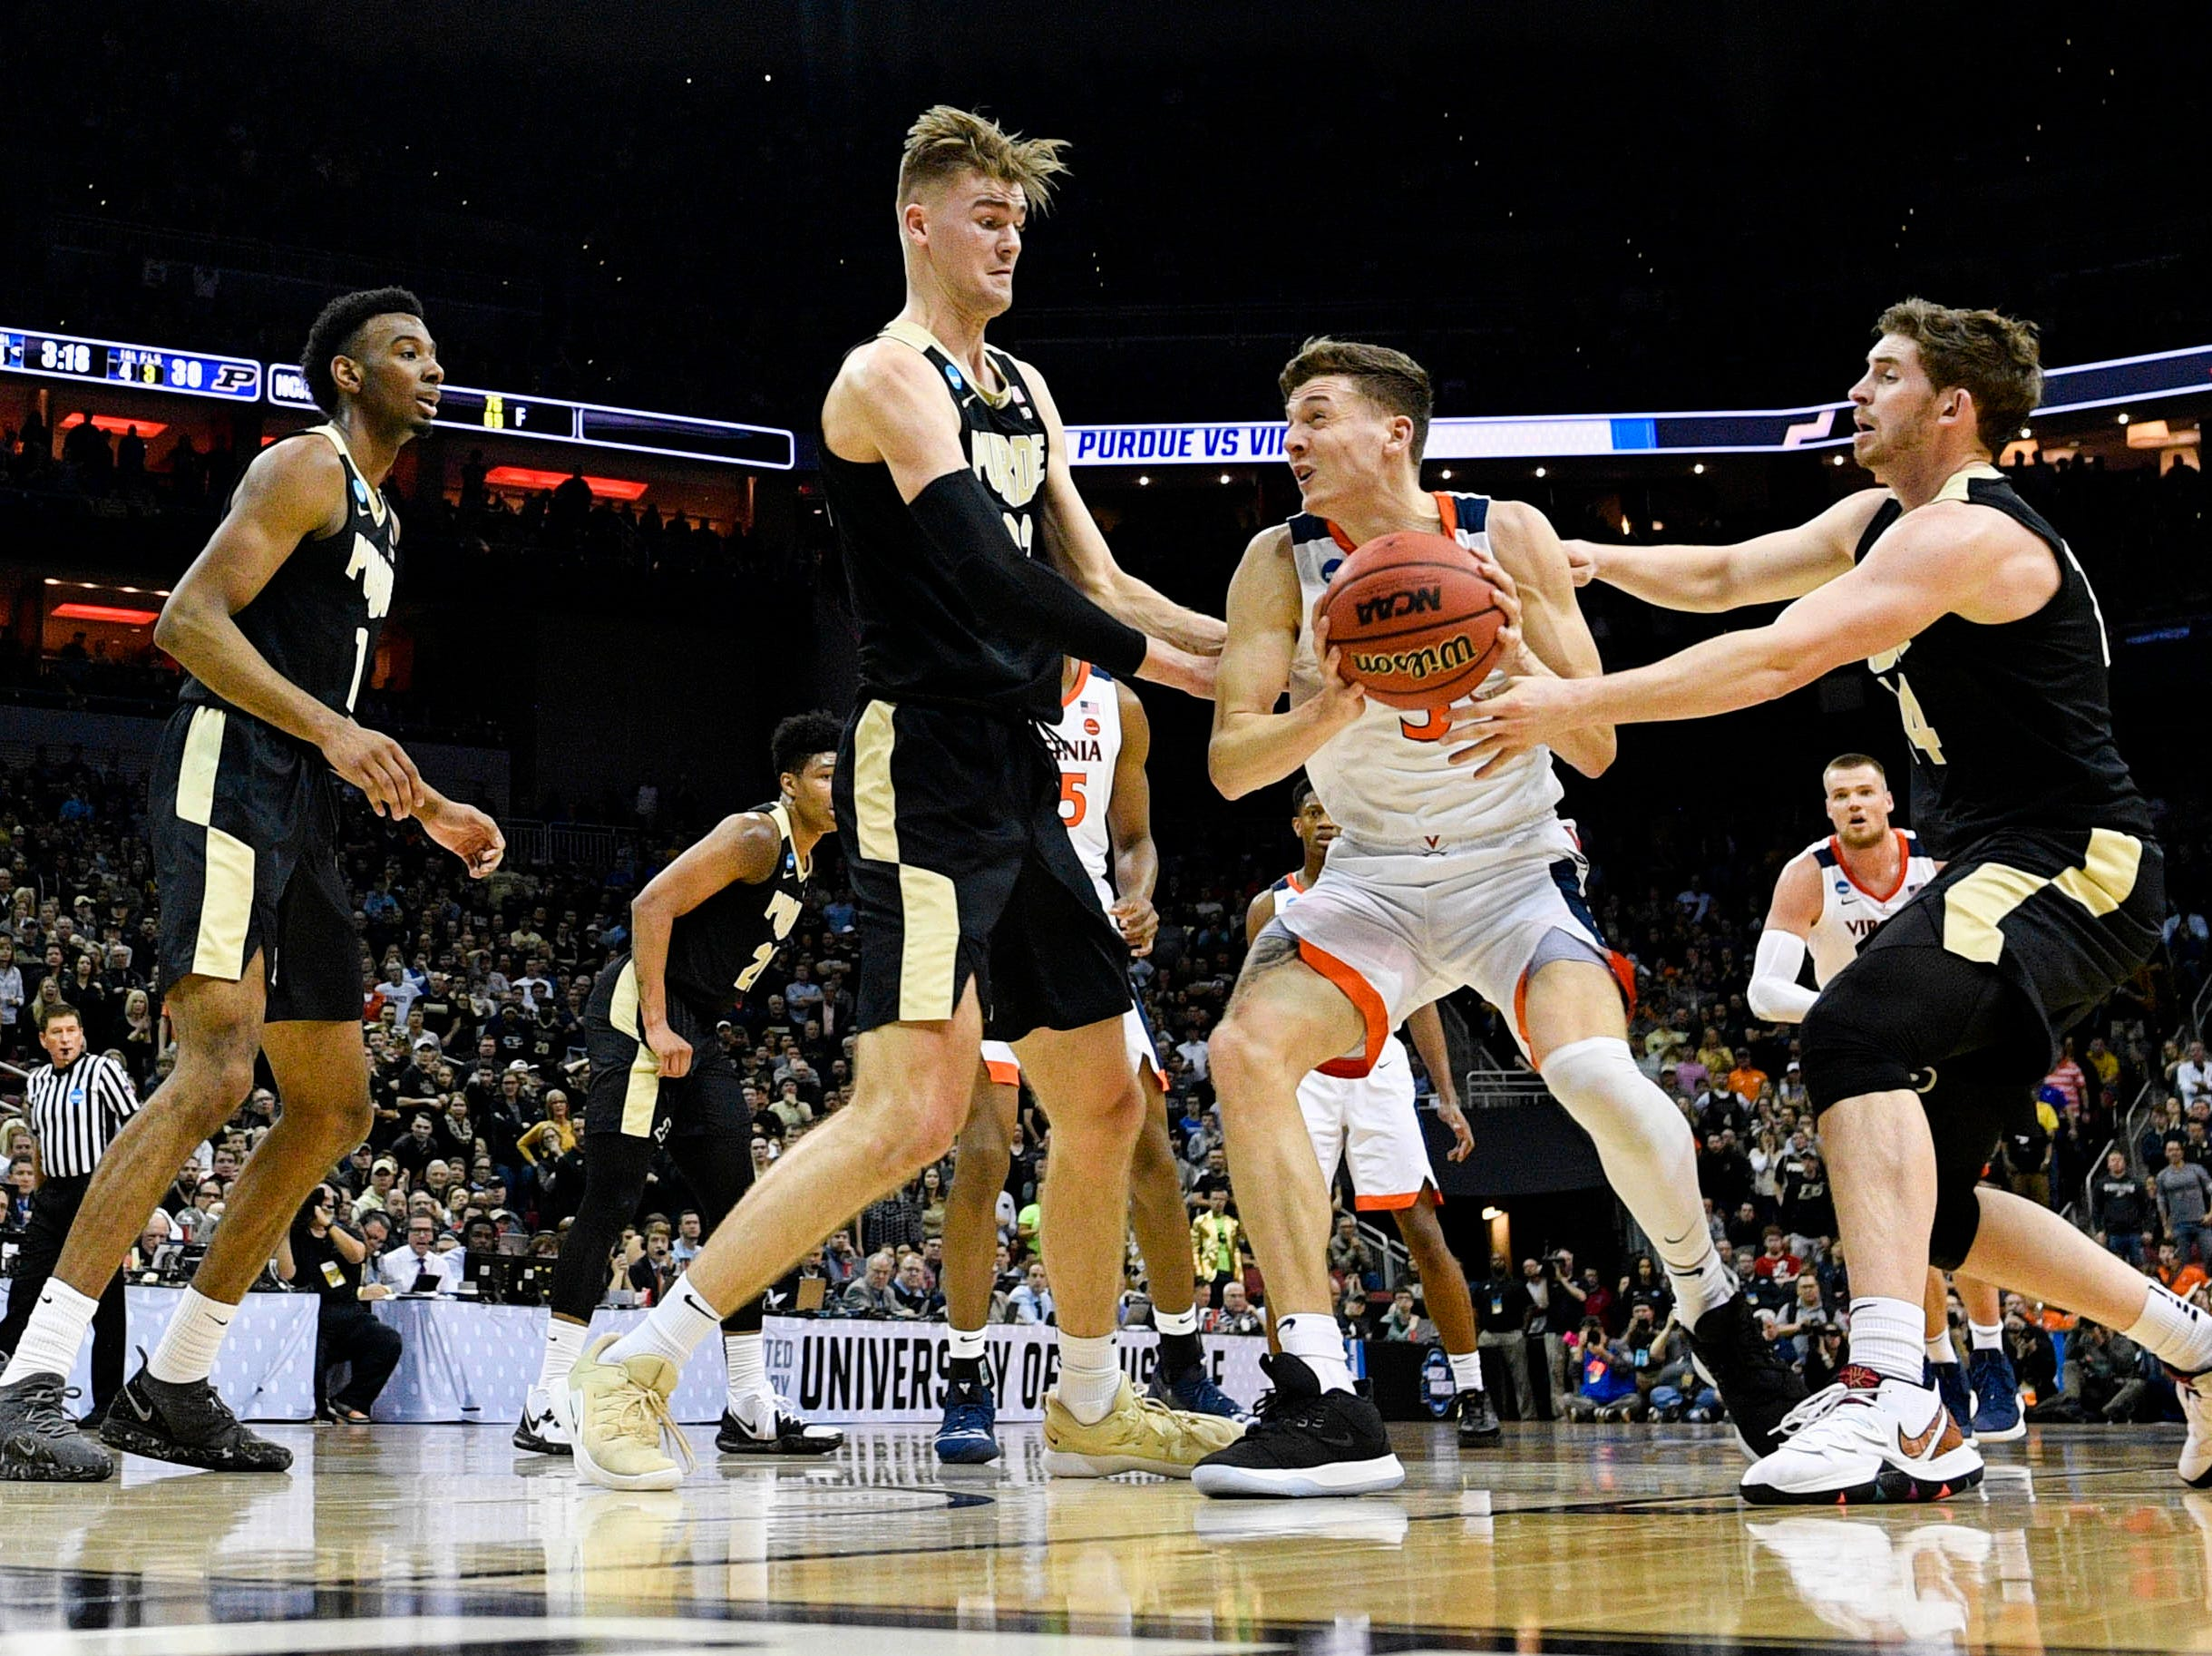 Mar 30, 2019; Louisville, KY, United States; Virginia Cavaliers guard Kyle Guy (5) holds the ball as Purdue Boilermakers center Matt Haarms (32) and guard Ryan Cline (14) defend during the first half in the championship game of the south regional of the 2019 NCAA Tournament at KFC Yum Center. Mandatory Credit: Jamie Rhodes-USA TODAY Sports